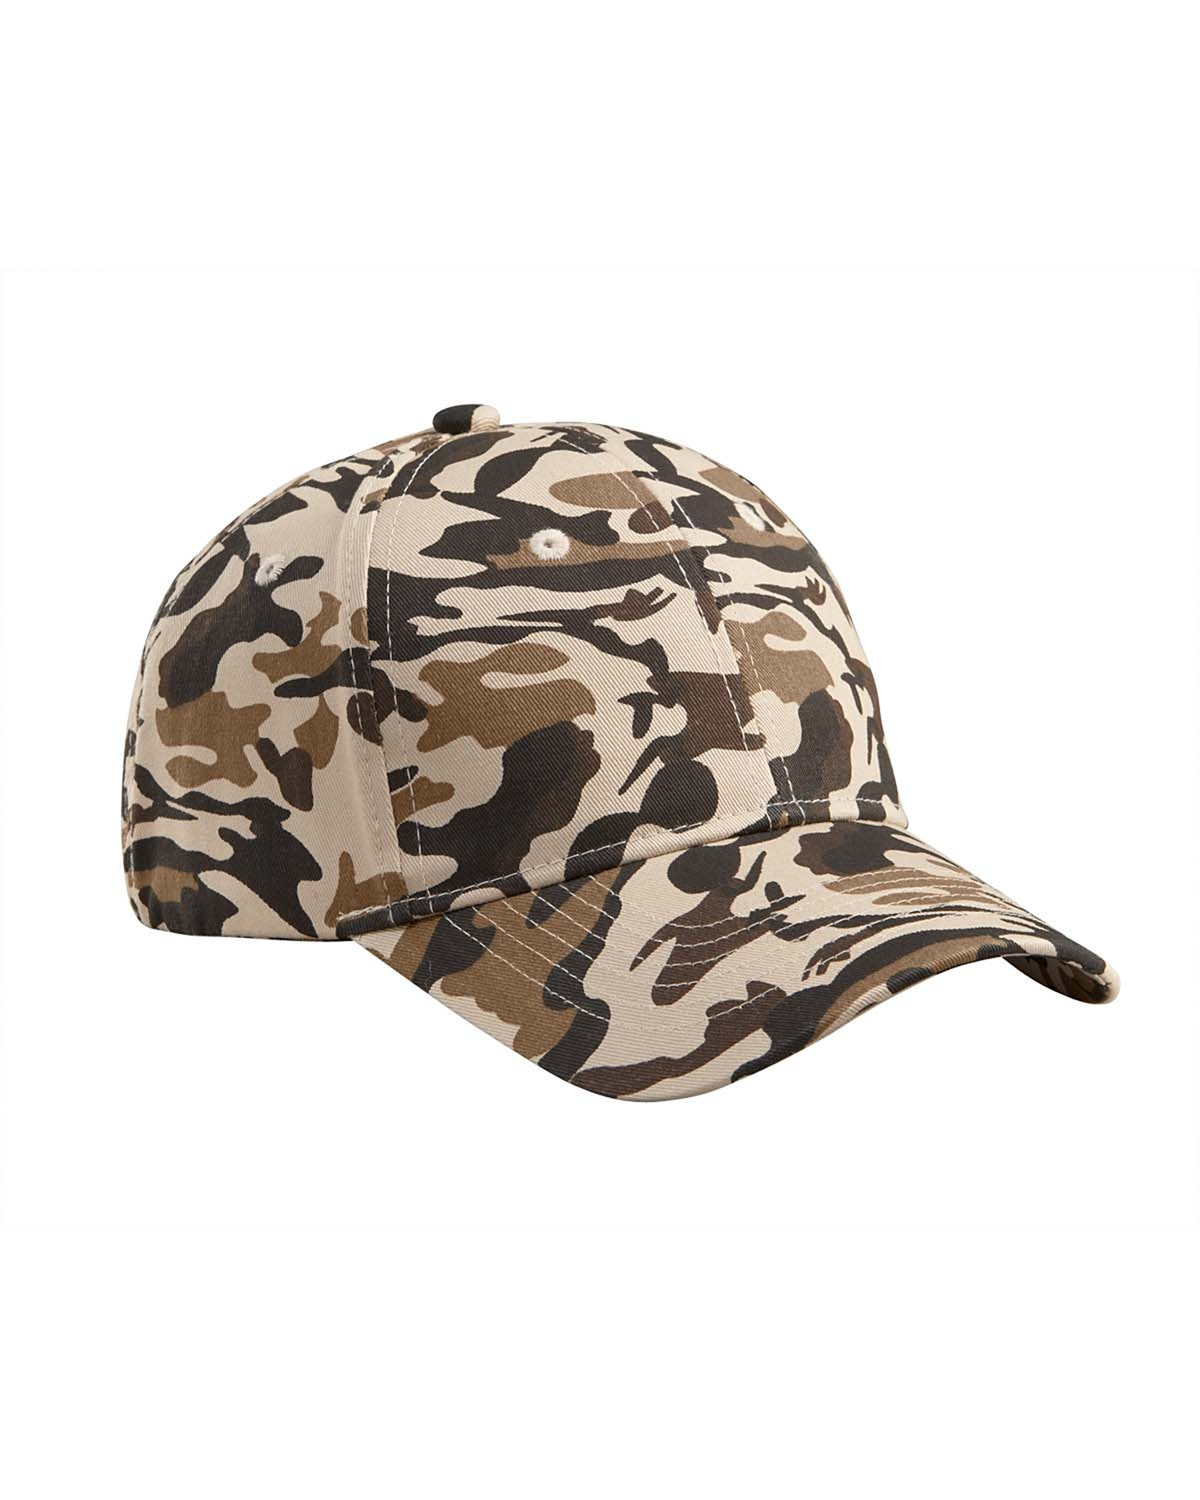 Big Accessories BX024 Desert Camo